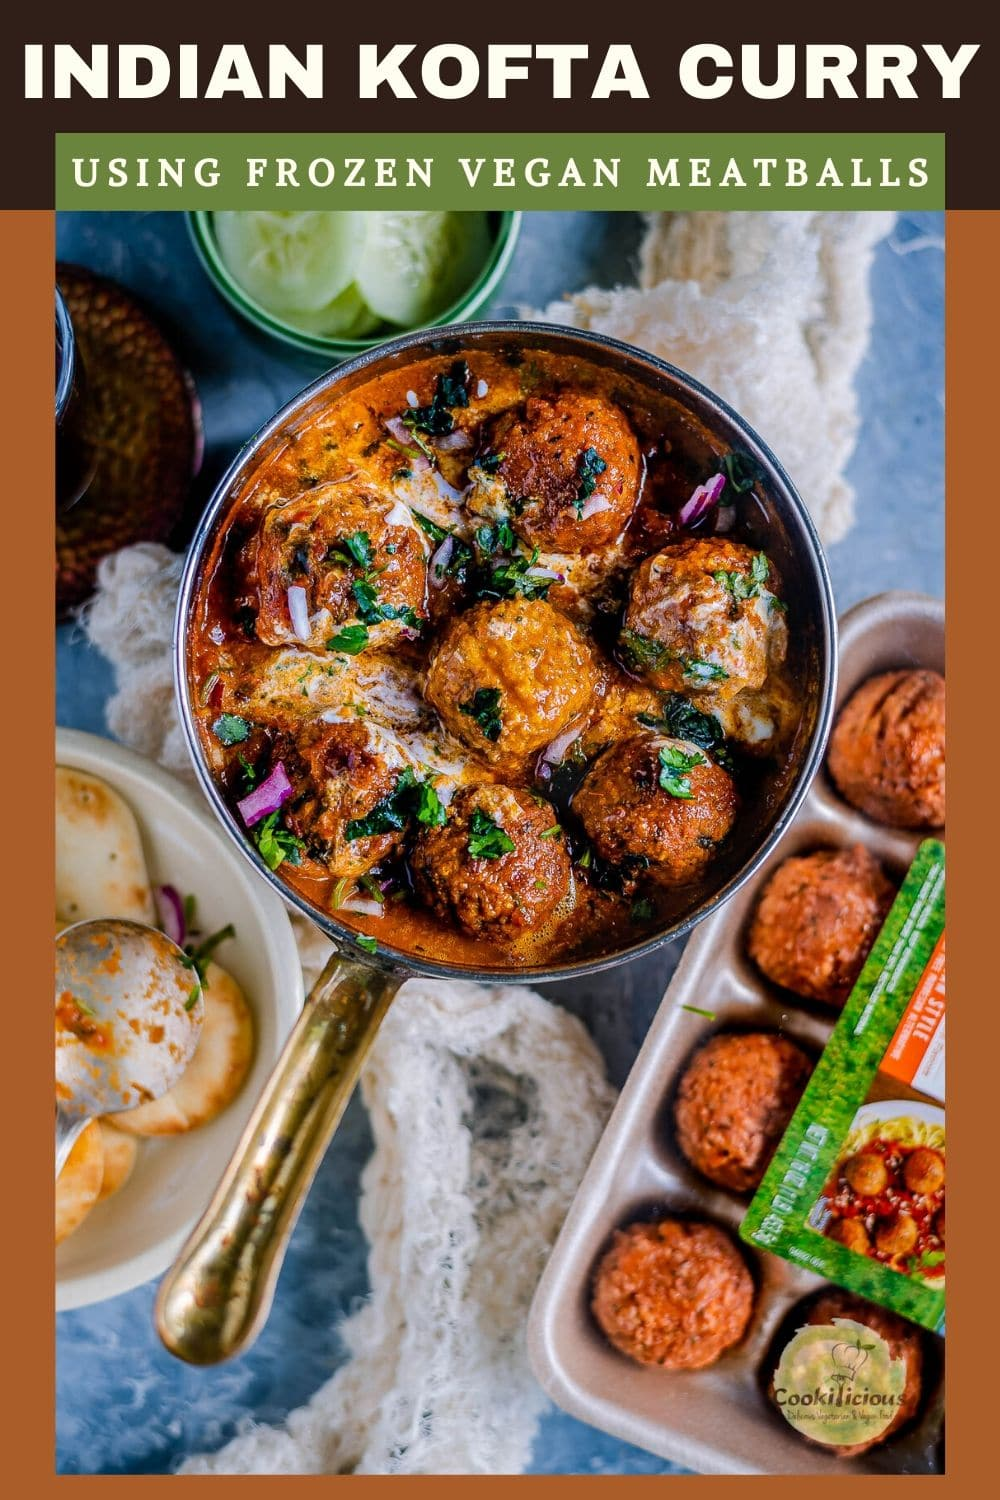 Spicy Kofta Curry with Plant-Based Meatballs Recip